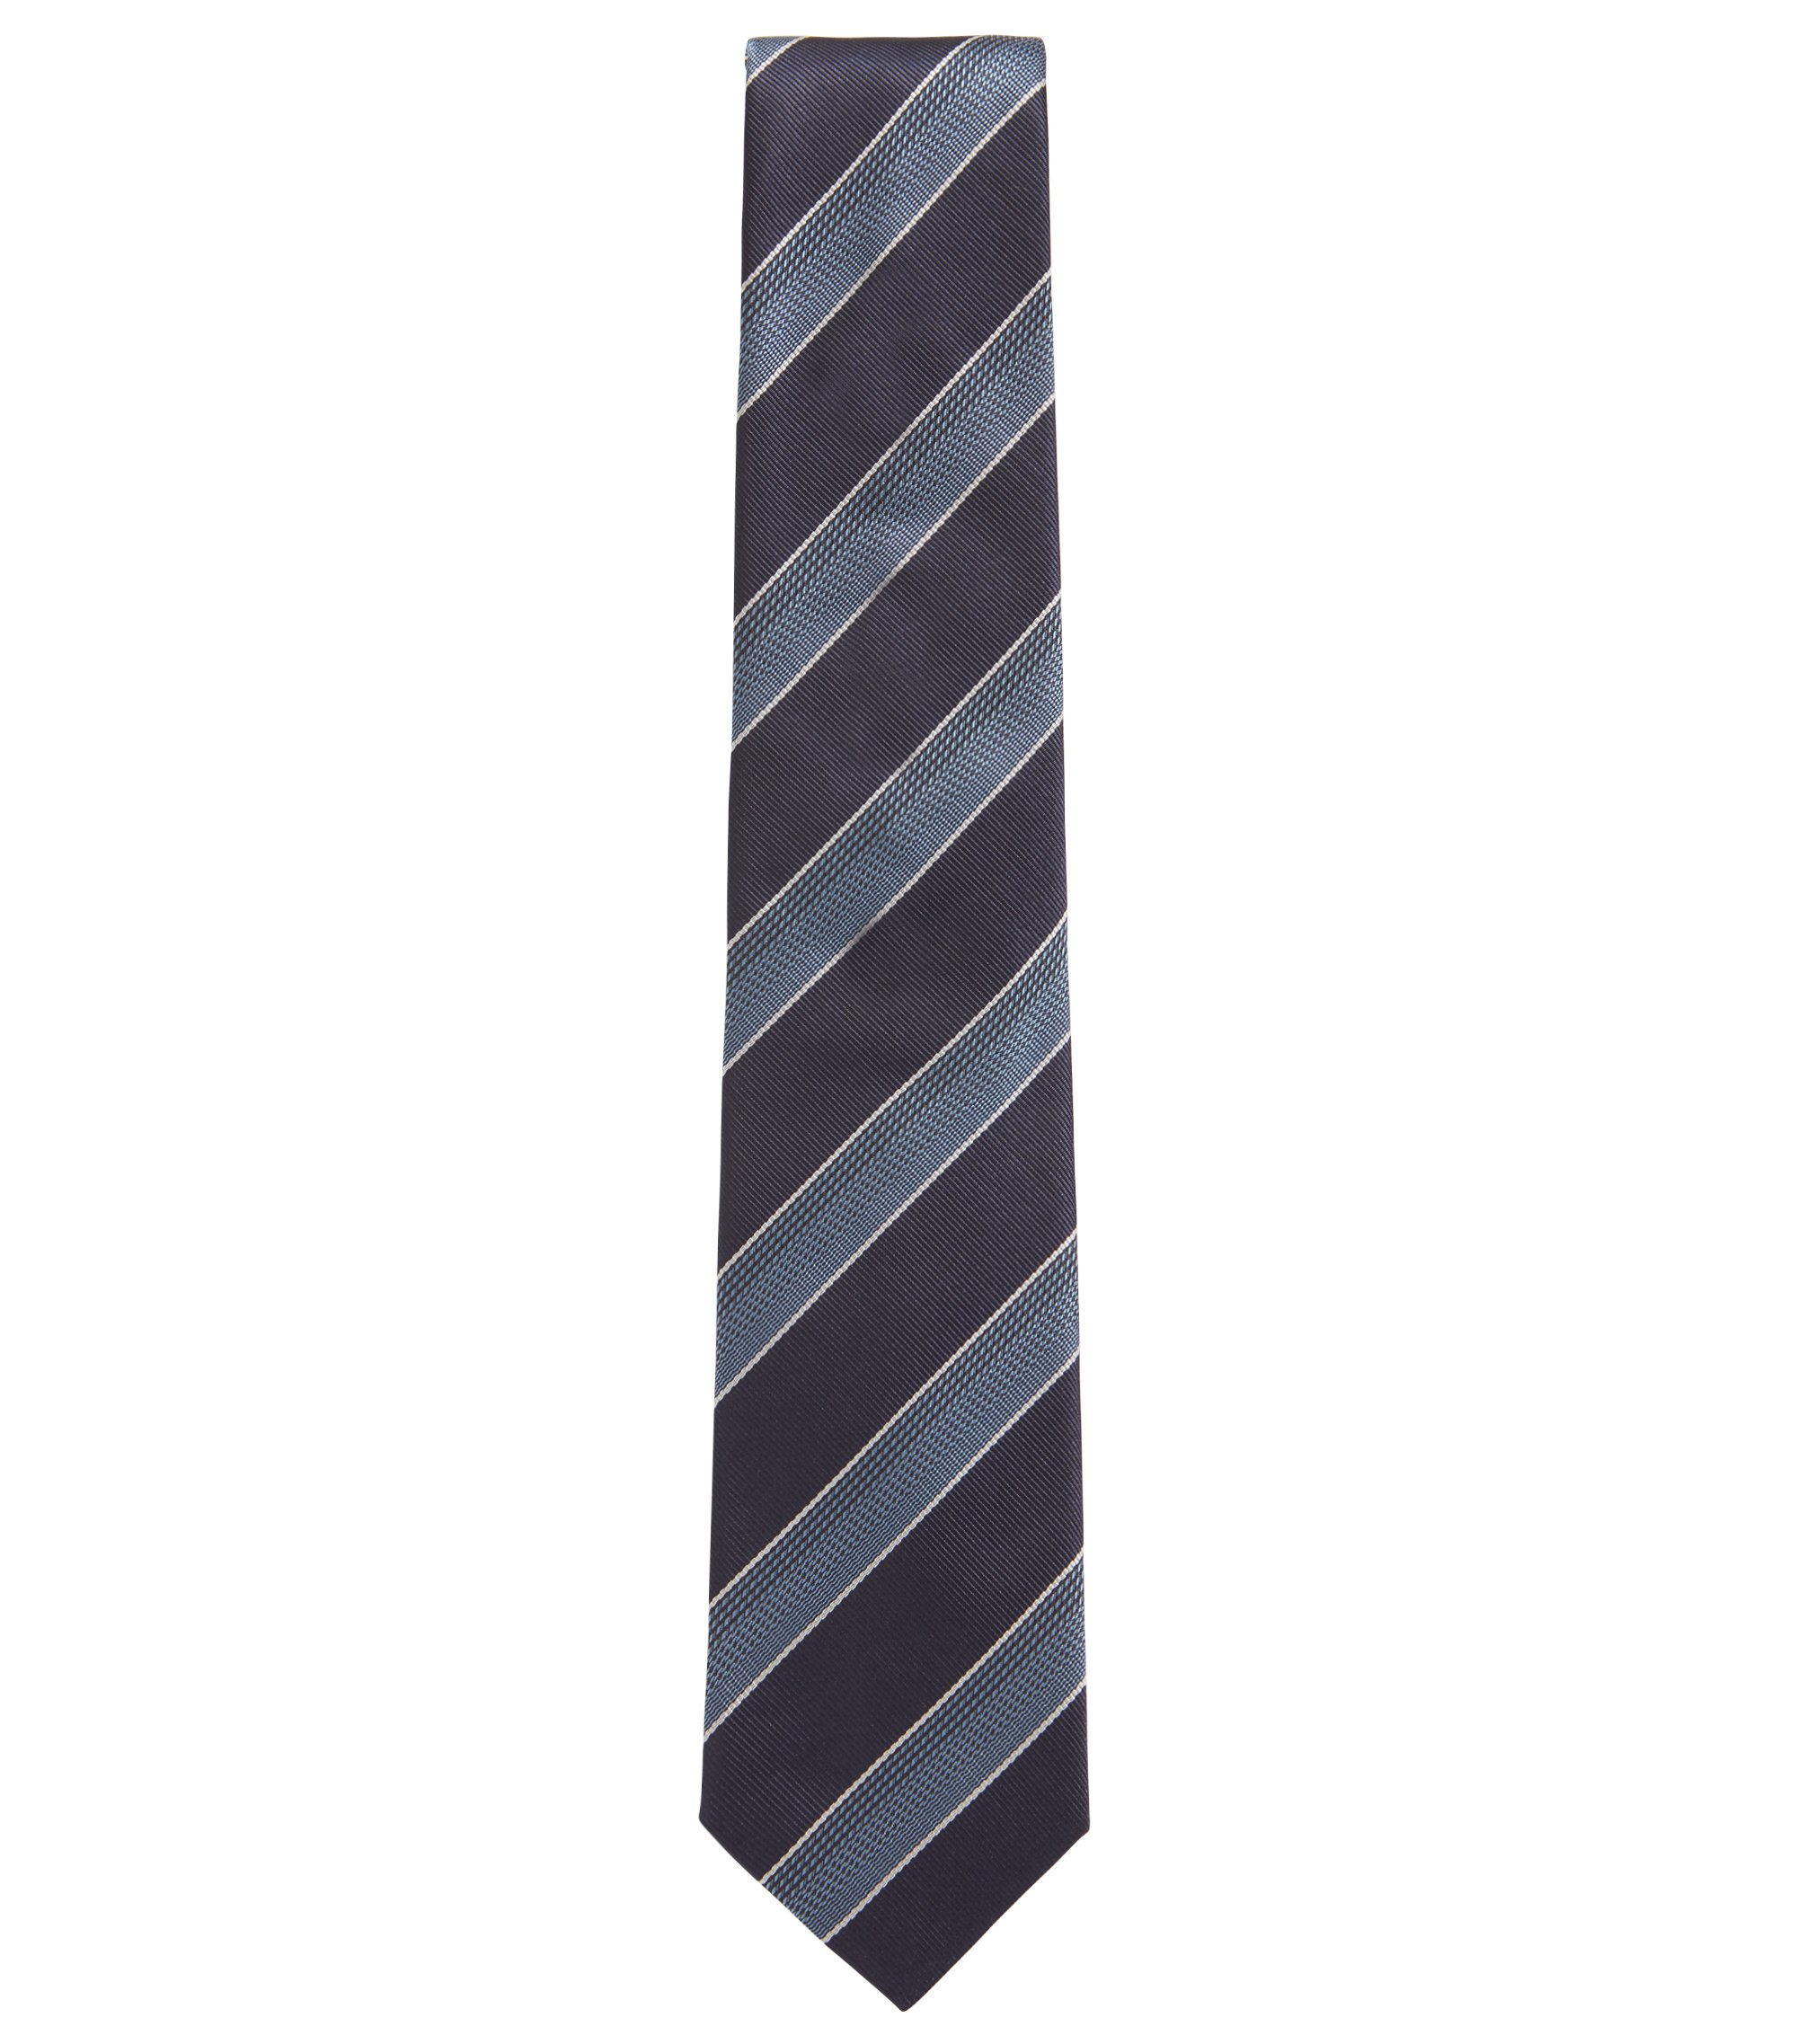 Silk jacquard tie in textured diagonal stripes, Open Blue